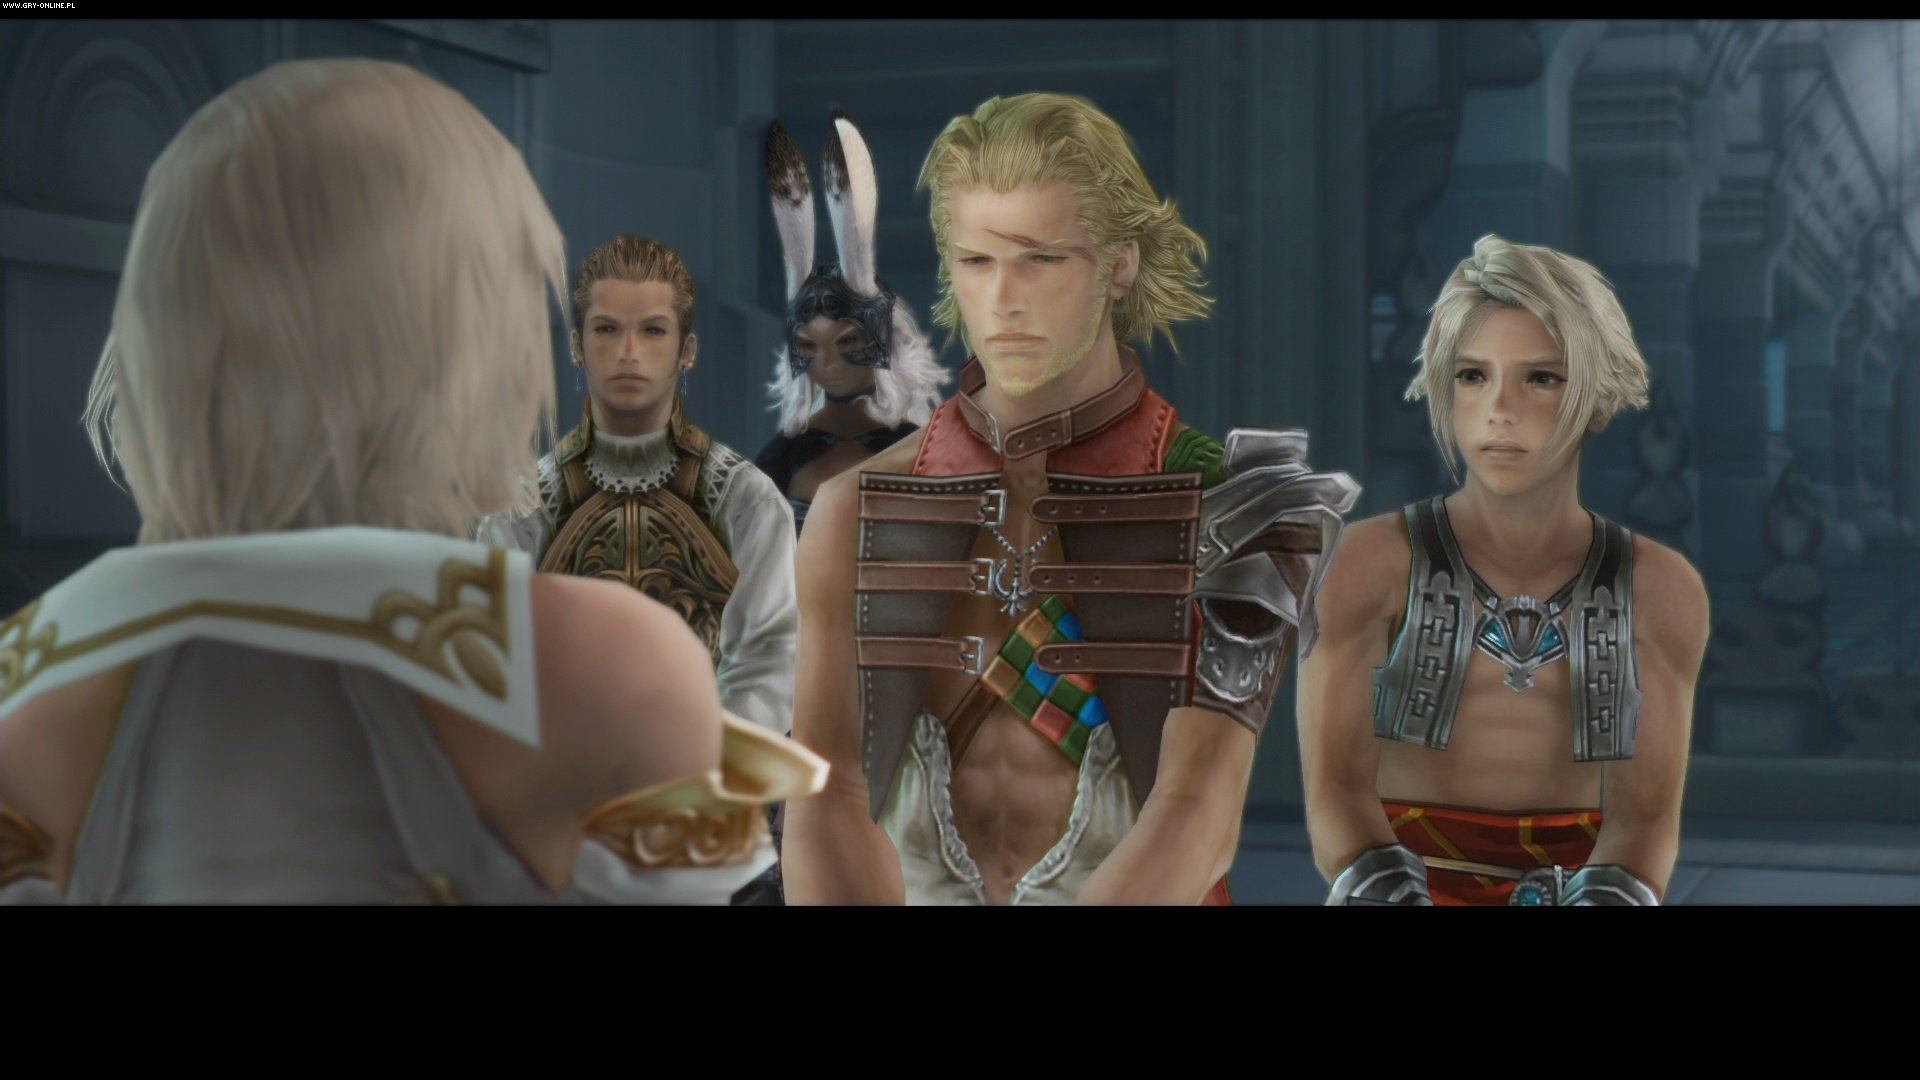 Final Fantasy XII: The Zodiac Age PS4 Games Image 8/62, Square-Enix, Square-Enix / Eidos